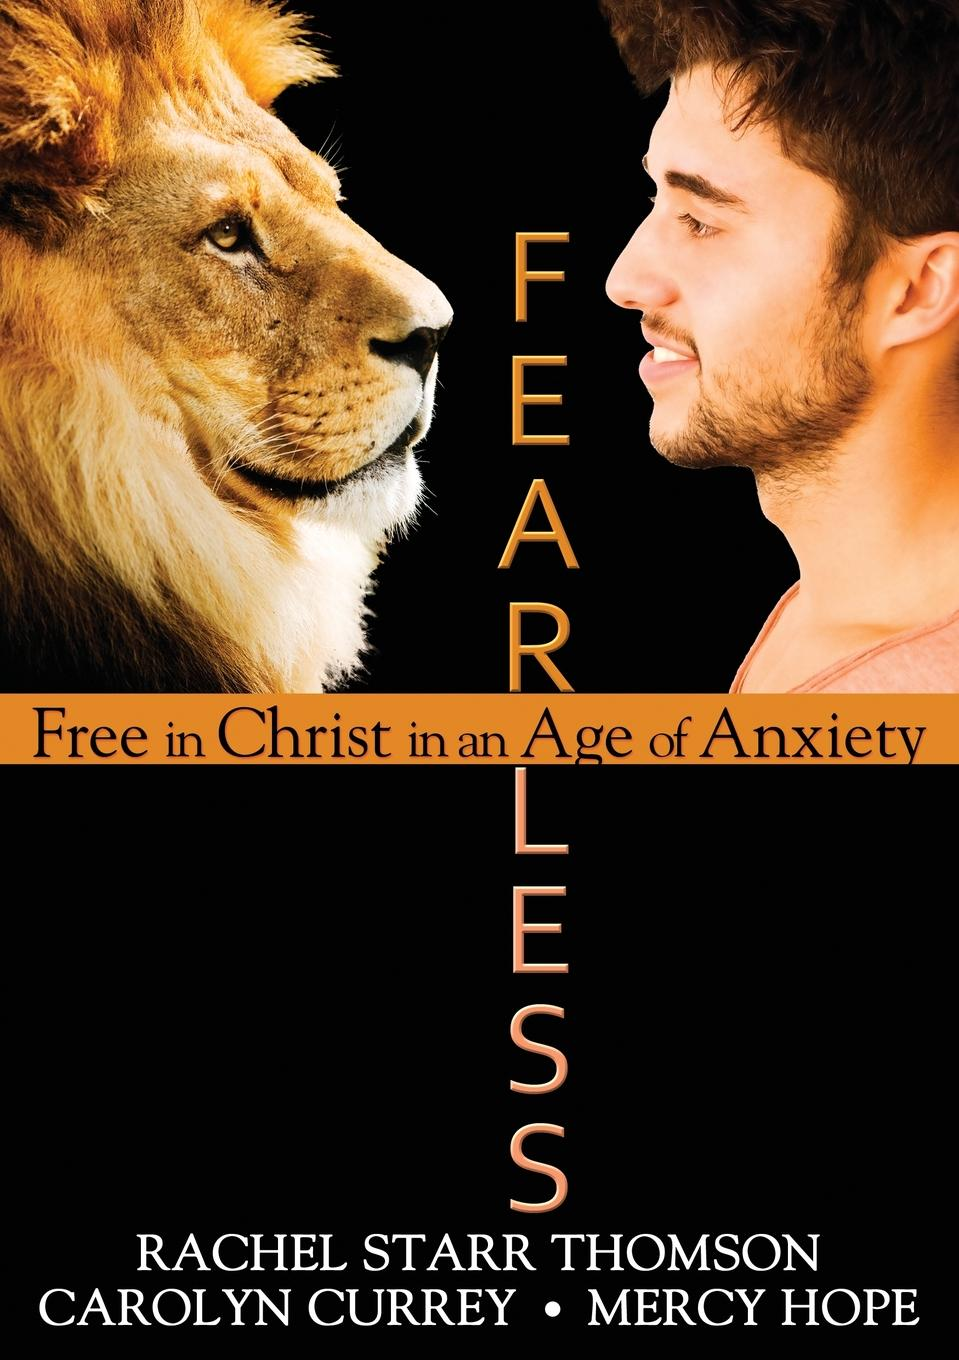 Rachel Starr Thomson, Mercy Hope, Carolyn Currey Fearless. Free in Christ in an Age of Anxiety nina rae springfields the power of hope